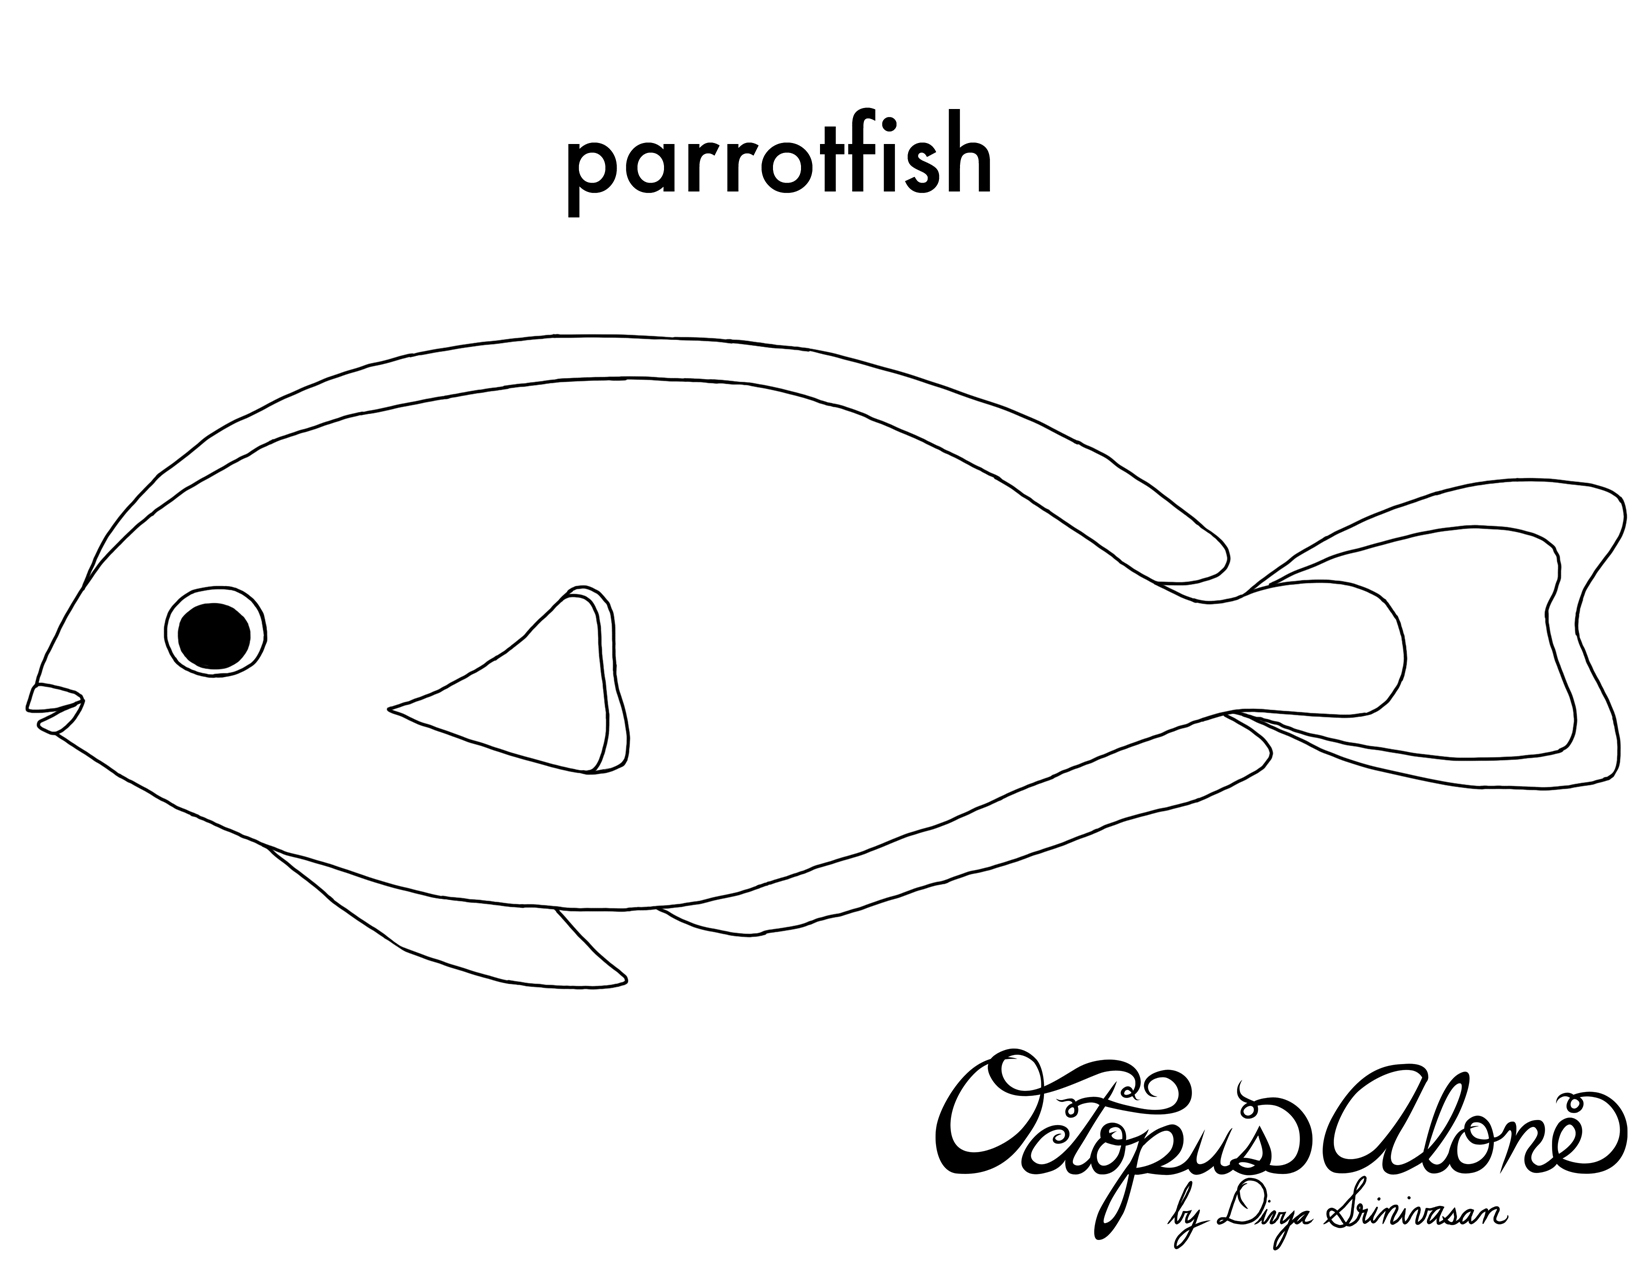 1650x1275 Parrot Fish Coloring Page Sketch Template, Parrot Fish Coloring